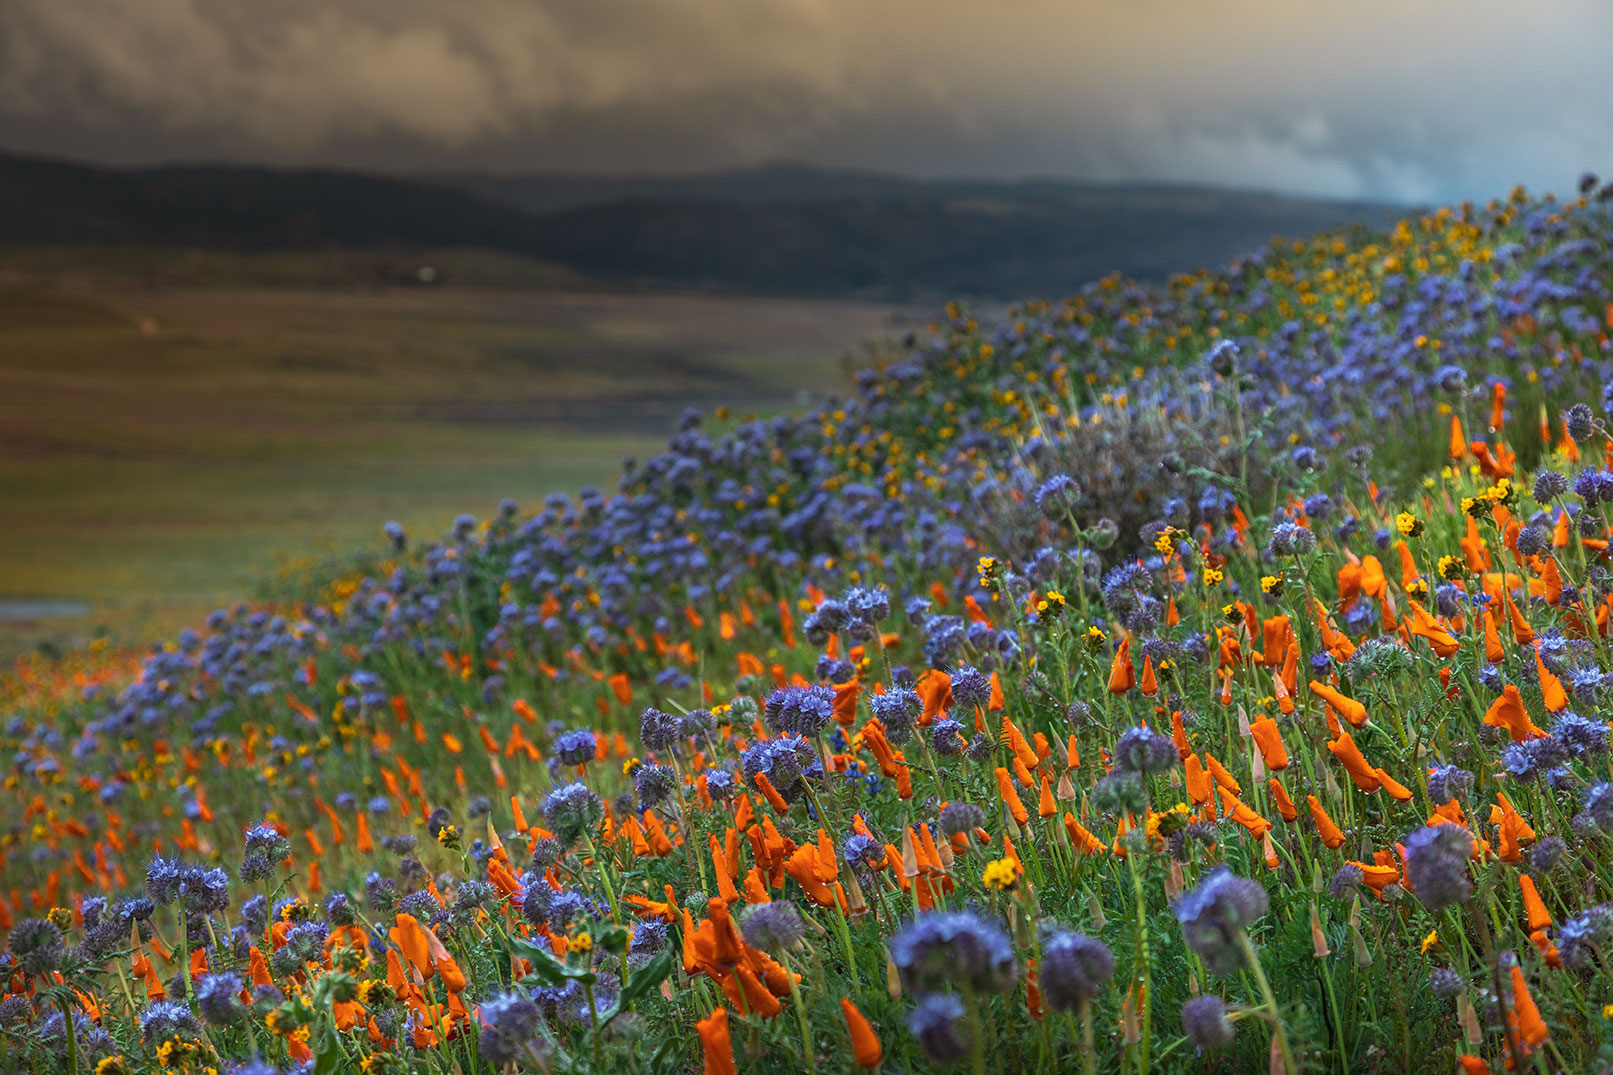 The contrast of colors of the flowers with the dramatic dark sky